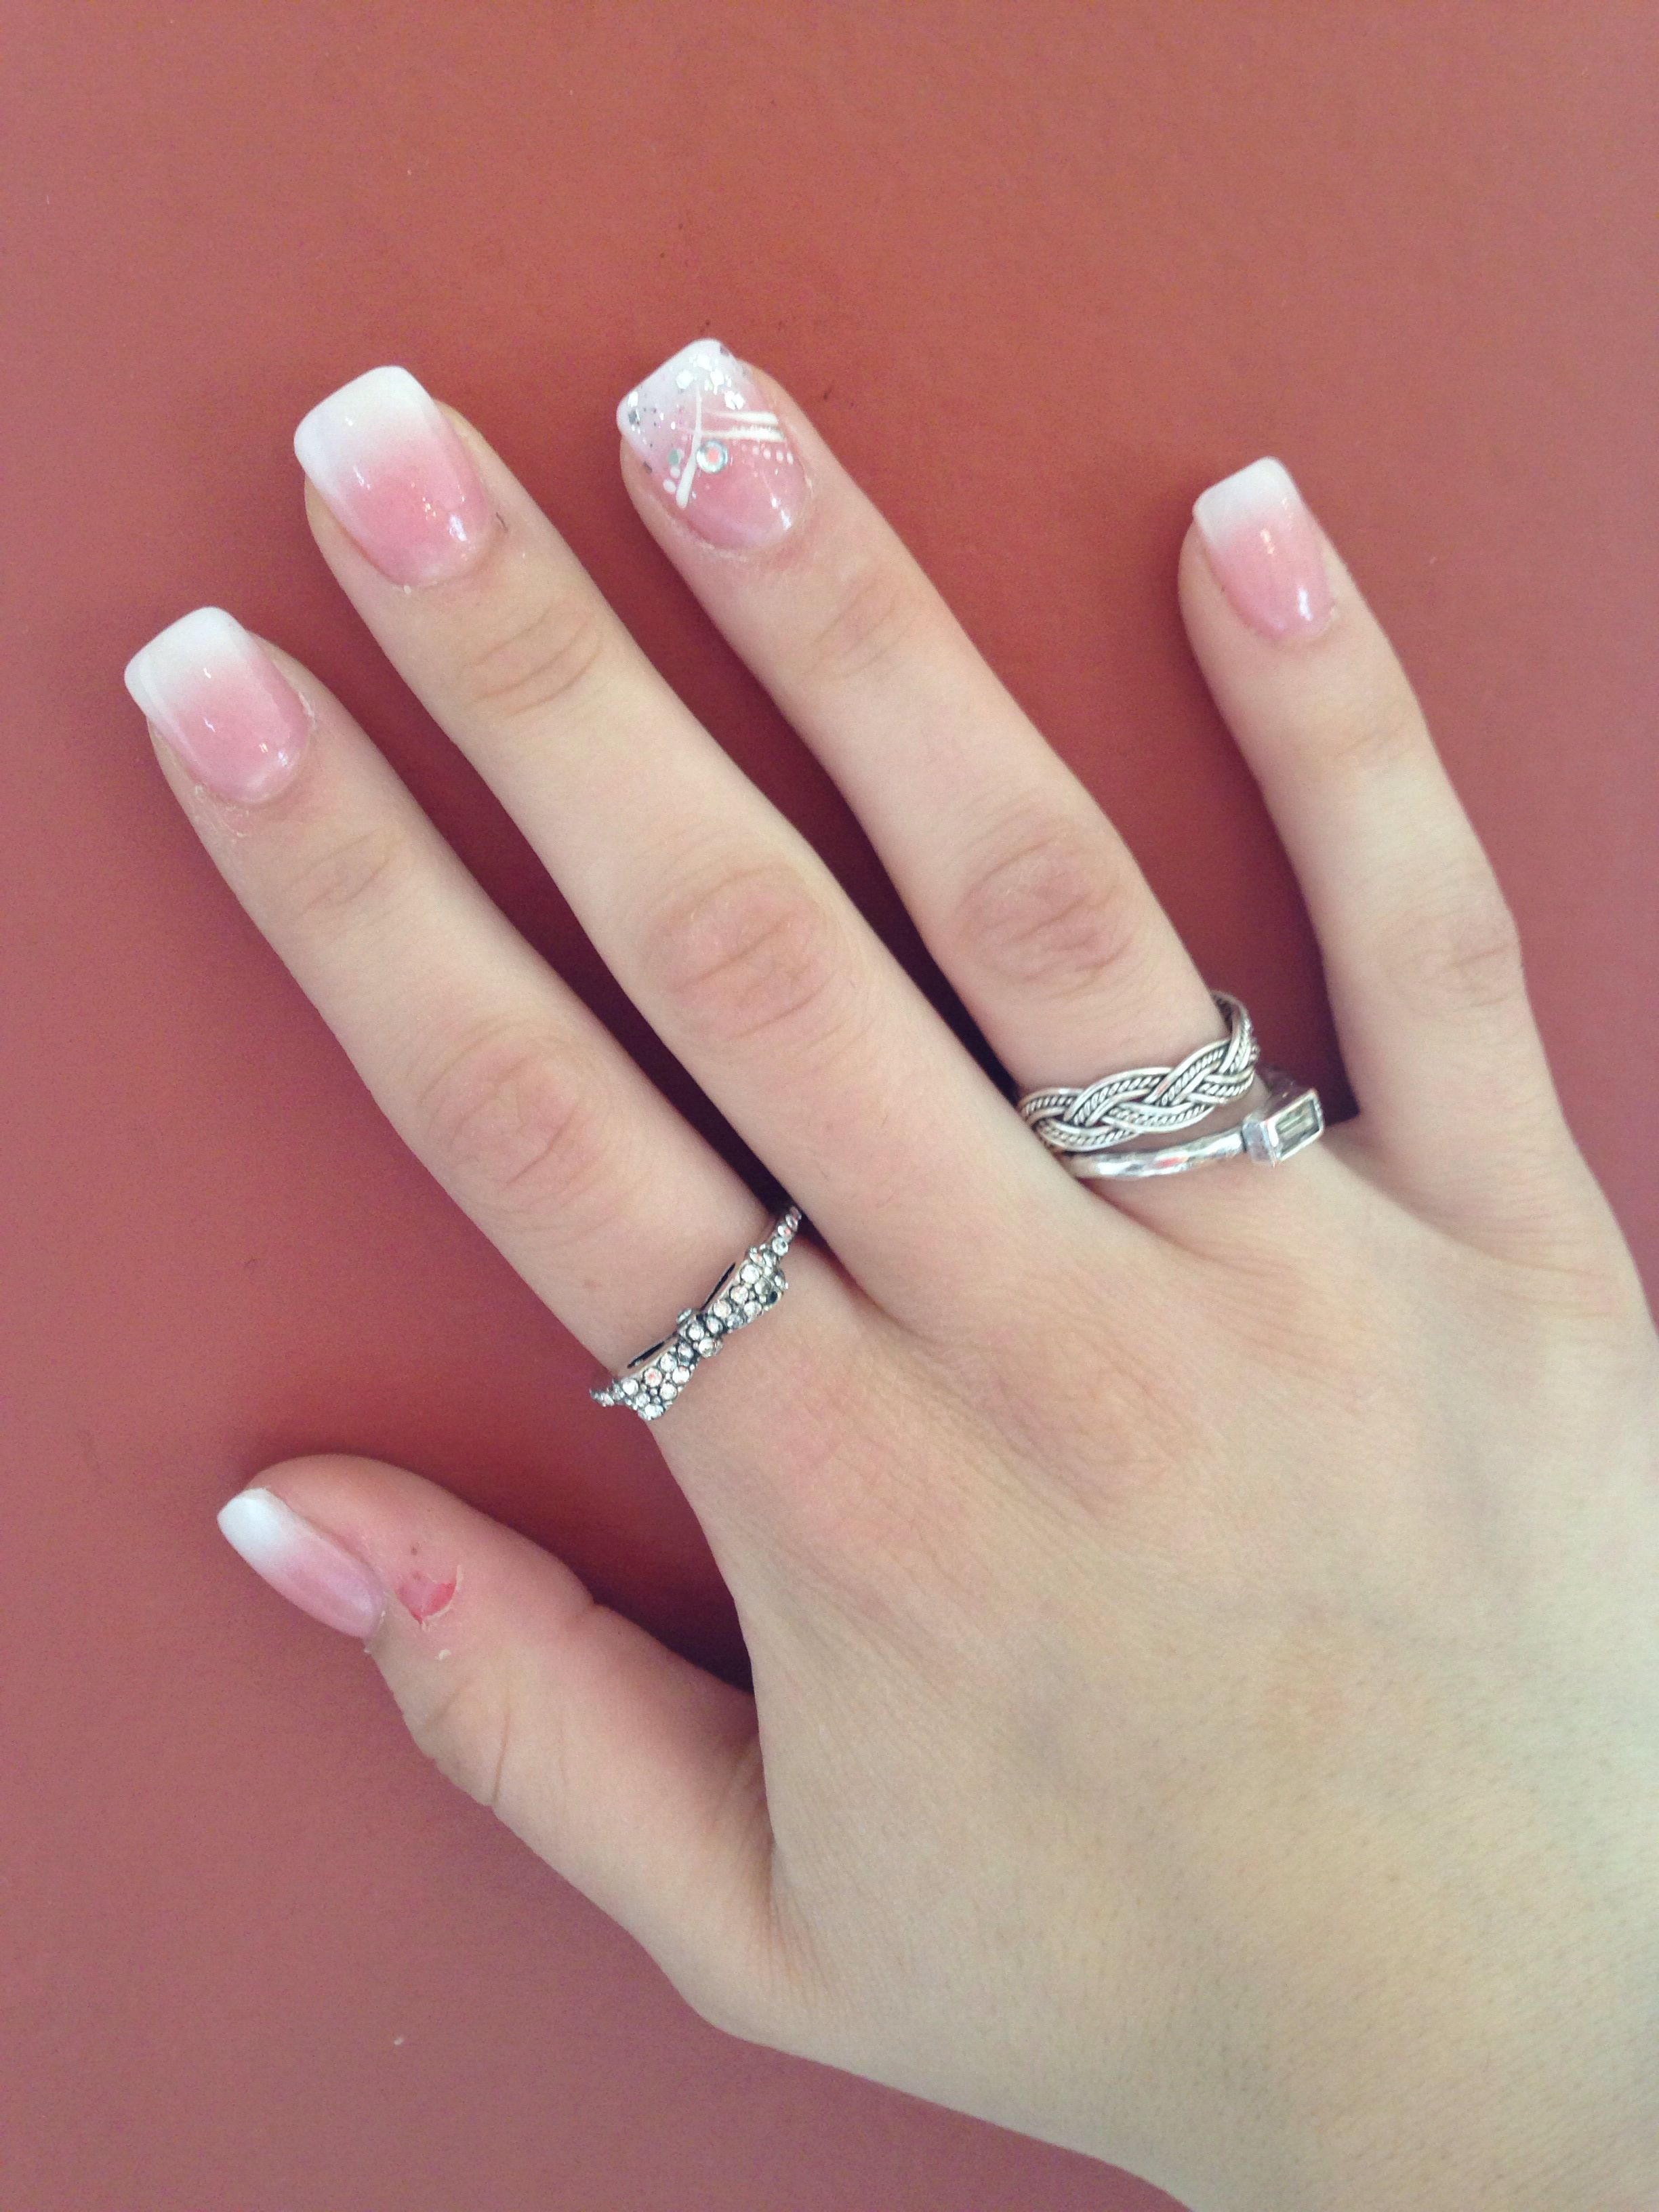 Full set acrylics. Ombre faded French manicure with rhinestone ...